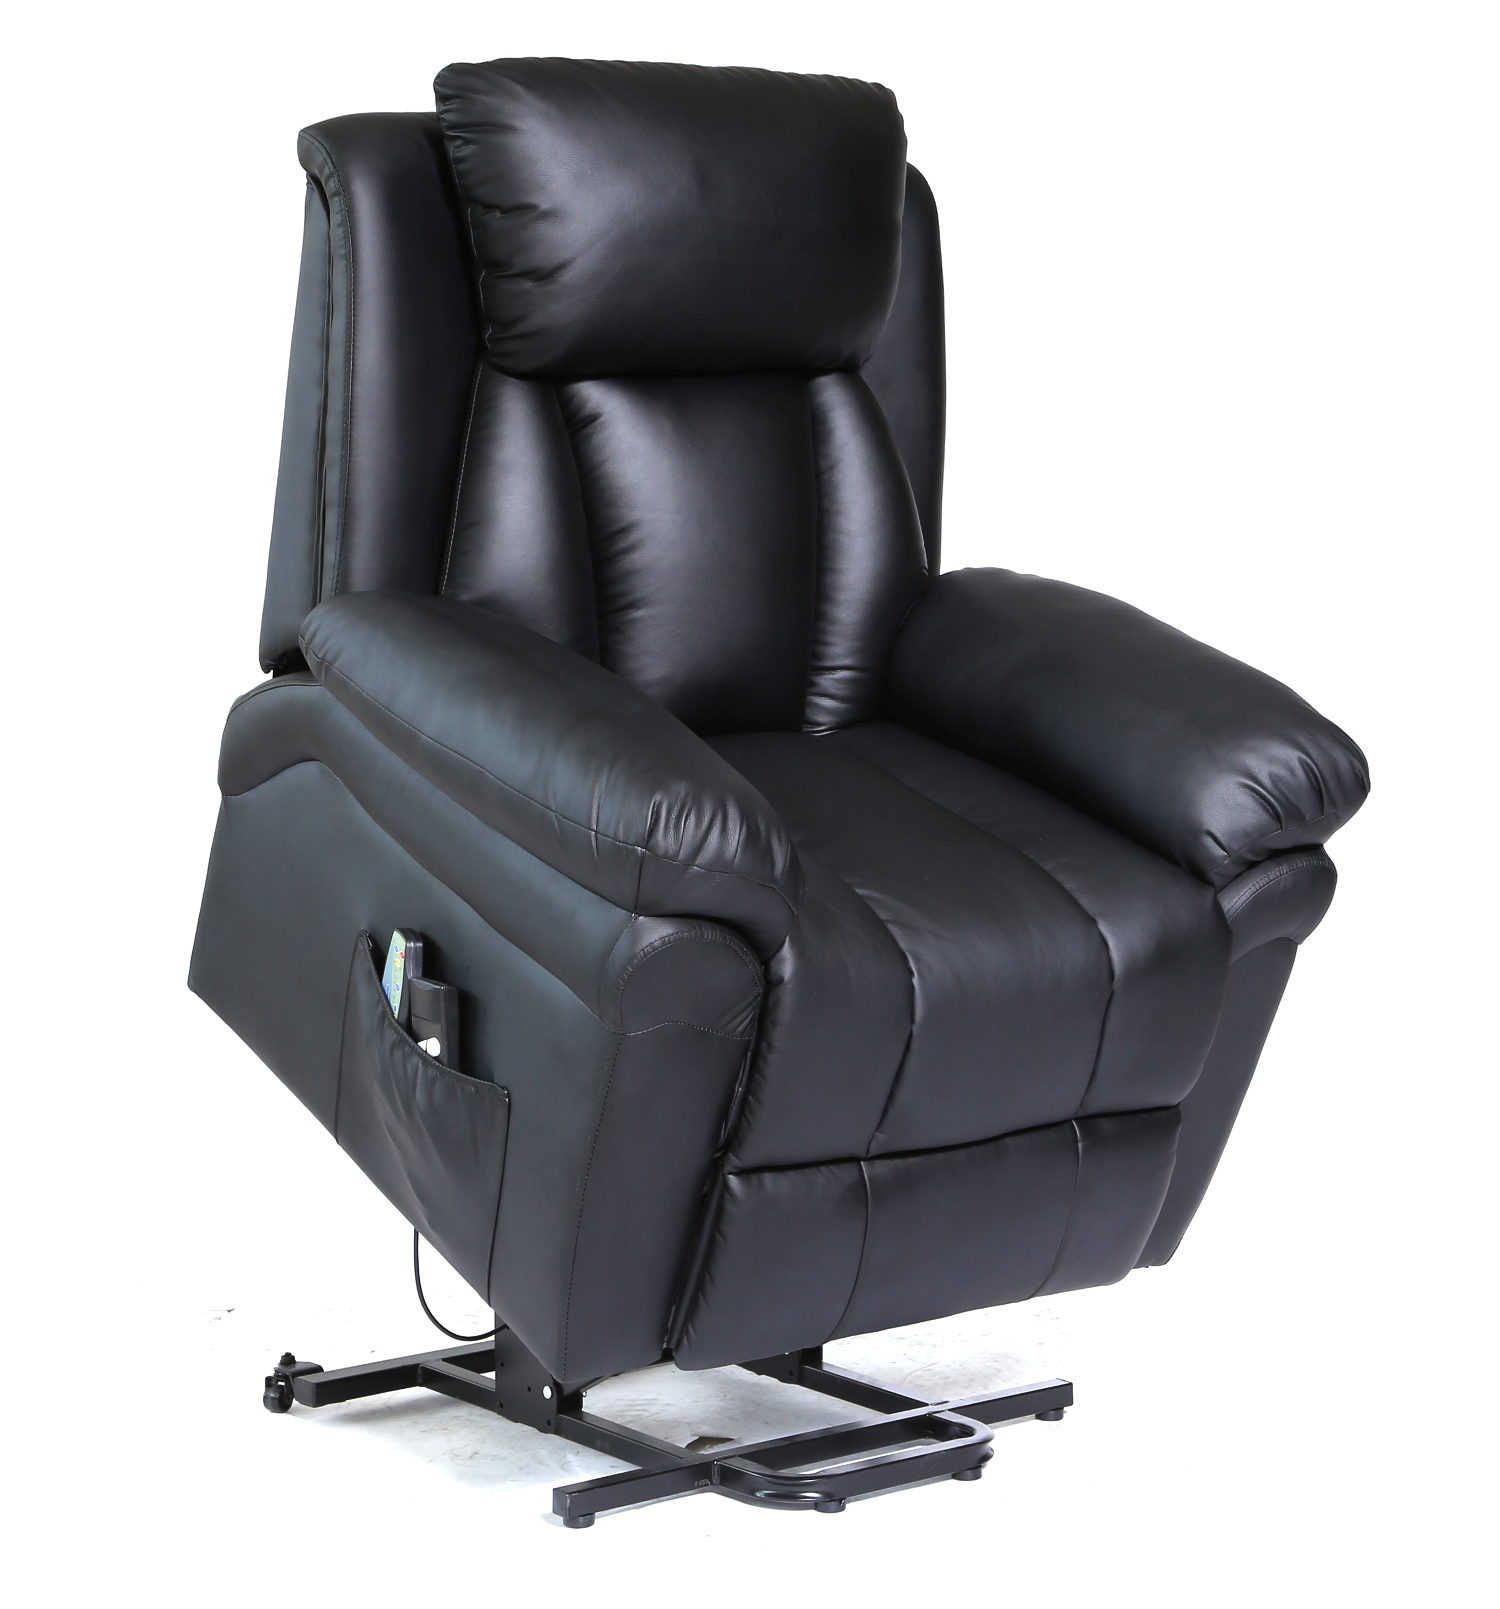 Power Lift Recliner Massage Chair Heated With Massage